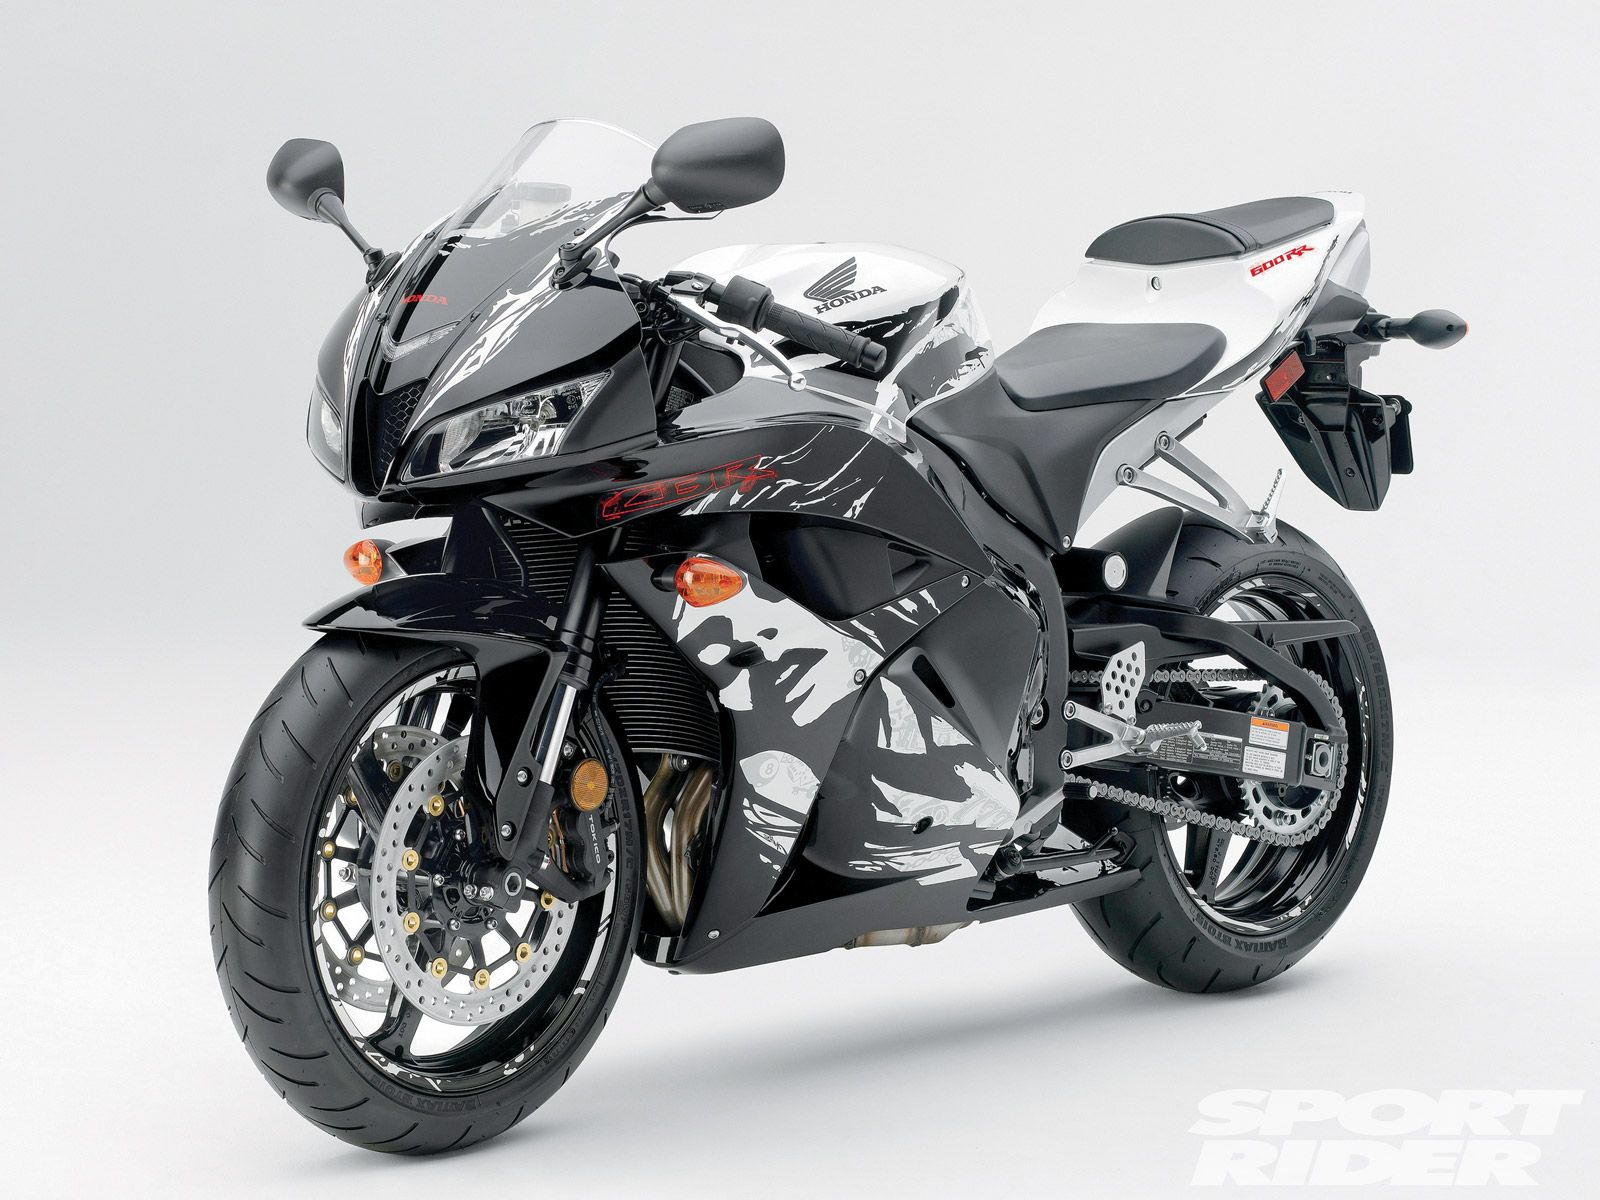 Honda Sport Bike Hd Wallpapers Images Photos Pictures At Http Www Hdwallcloud Com Honda Sports Bike Hd Wallpapers Honda Cbr600rr Honda Cbr Honda Cbr 600